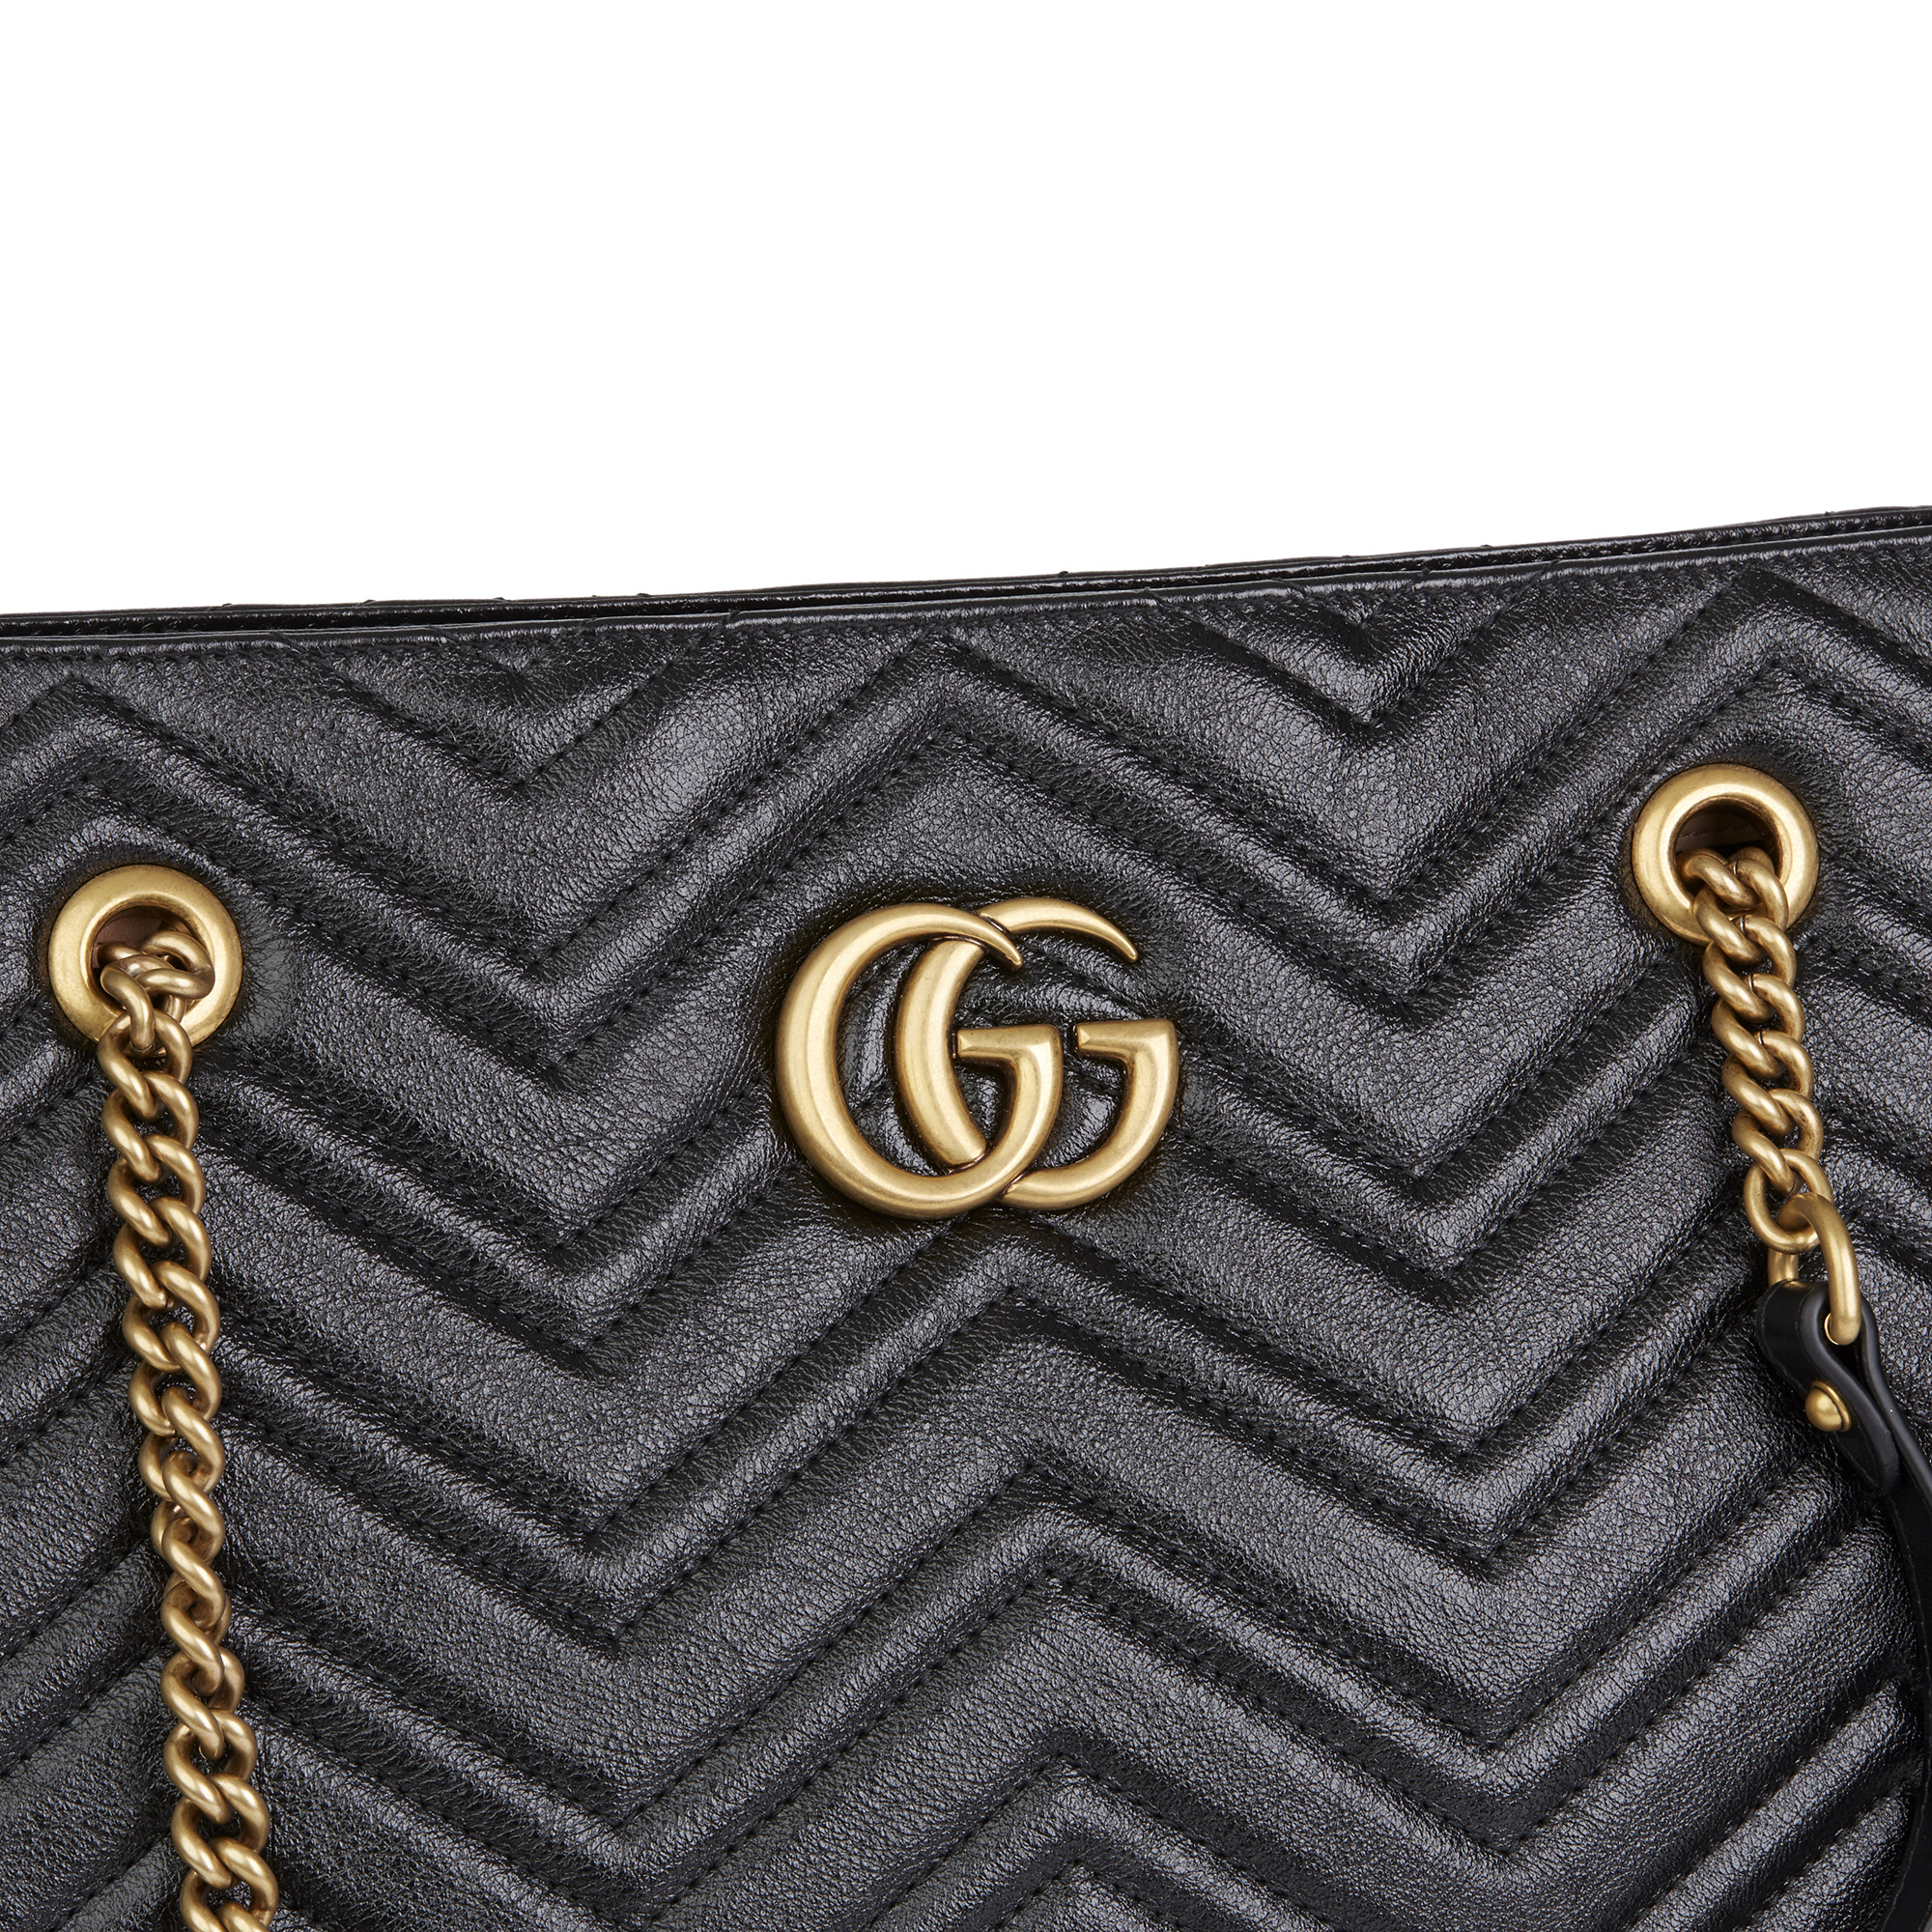 Gucci Black Quilted Shiny Calfskin Leather Marmont Shoulder Tote - Image 8 of 12